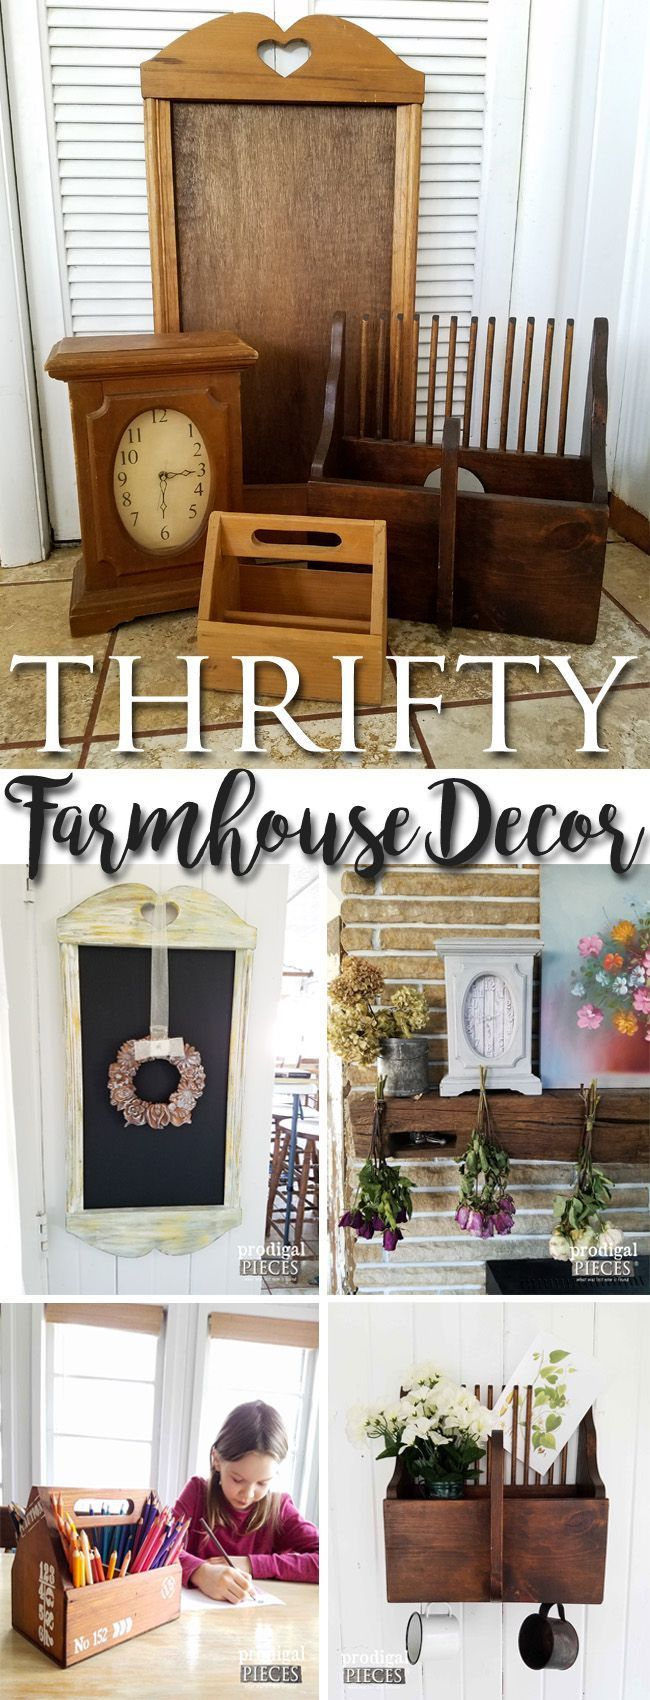 Thrifty farmhouse decor budget style decorating house for Thrifty decor